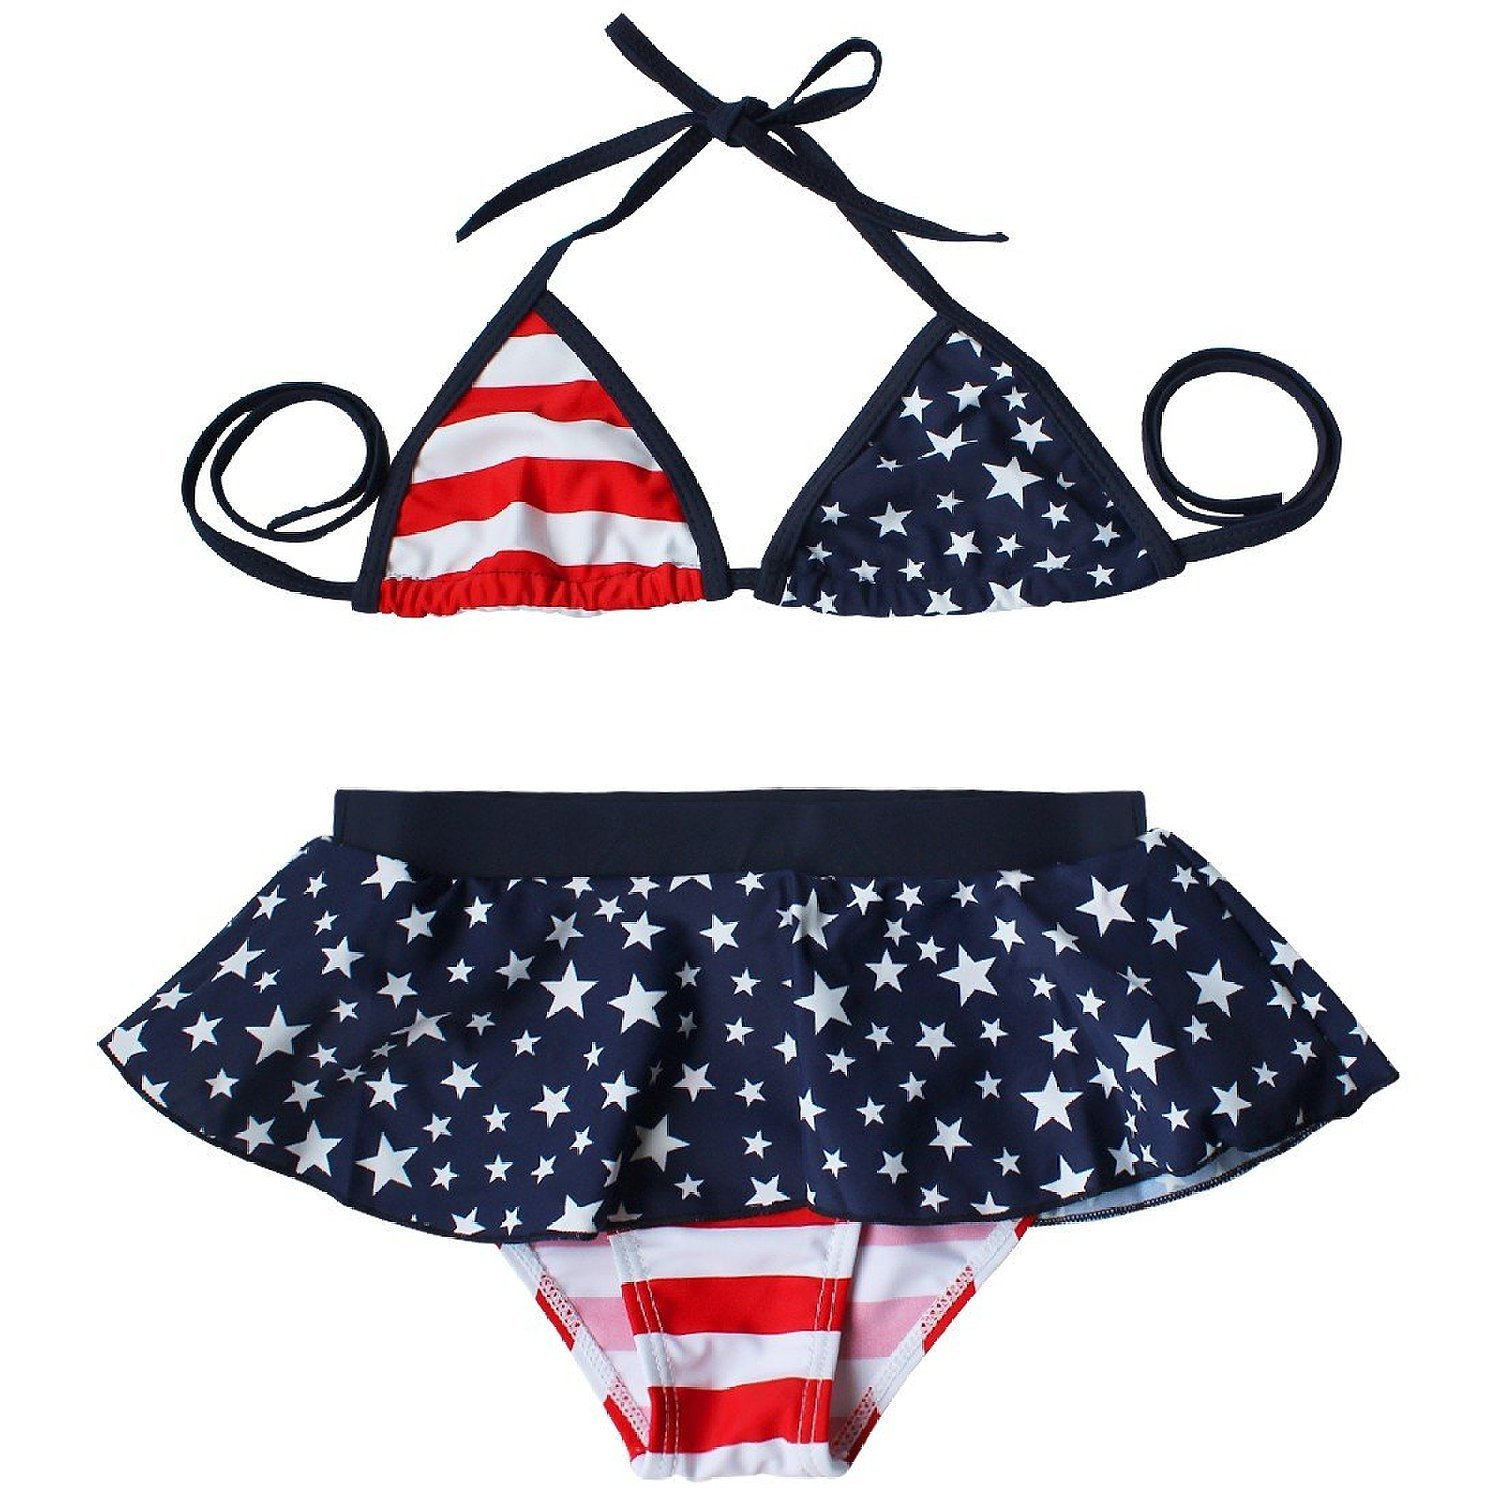 50a30bb29117b Top1: Baby Girl American USA Flag Stars Print Bikini Swimwear Swimsuit  Swimming